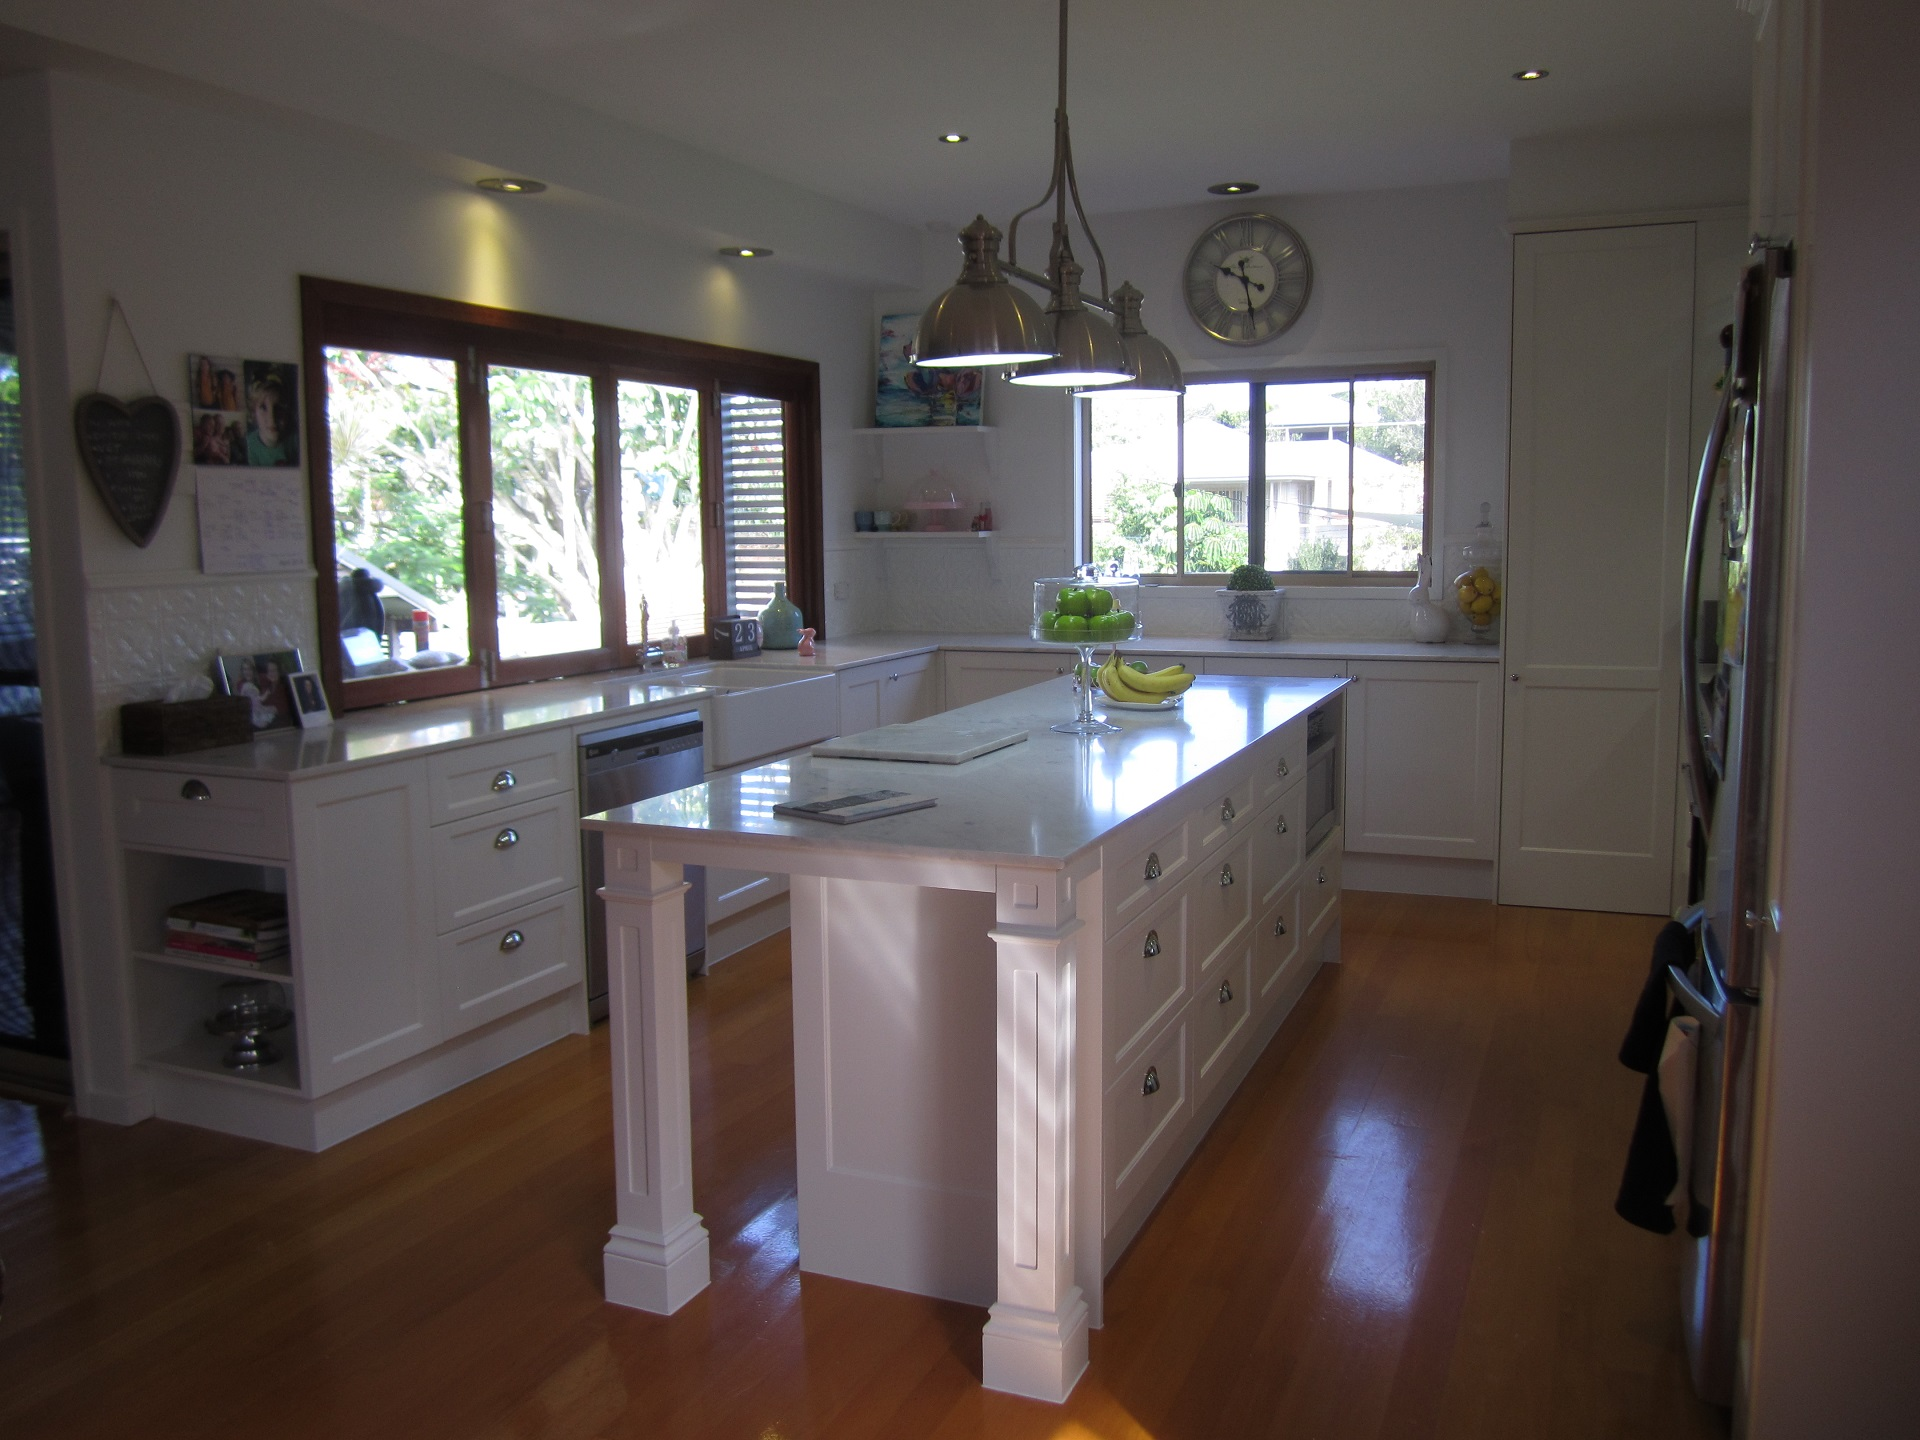 Brisbane Kitchen Design Garate Graceville Traditional KitchenRenovation (3)